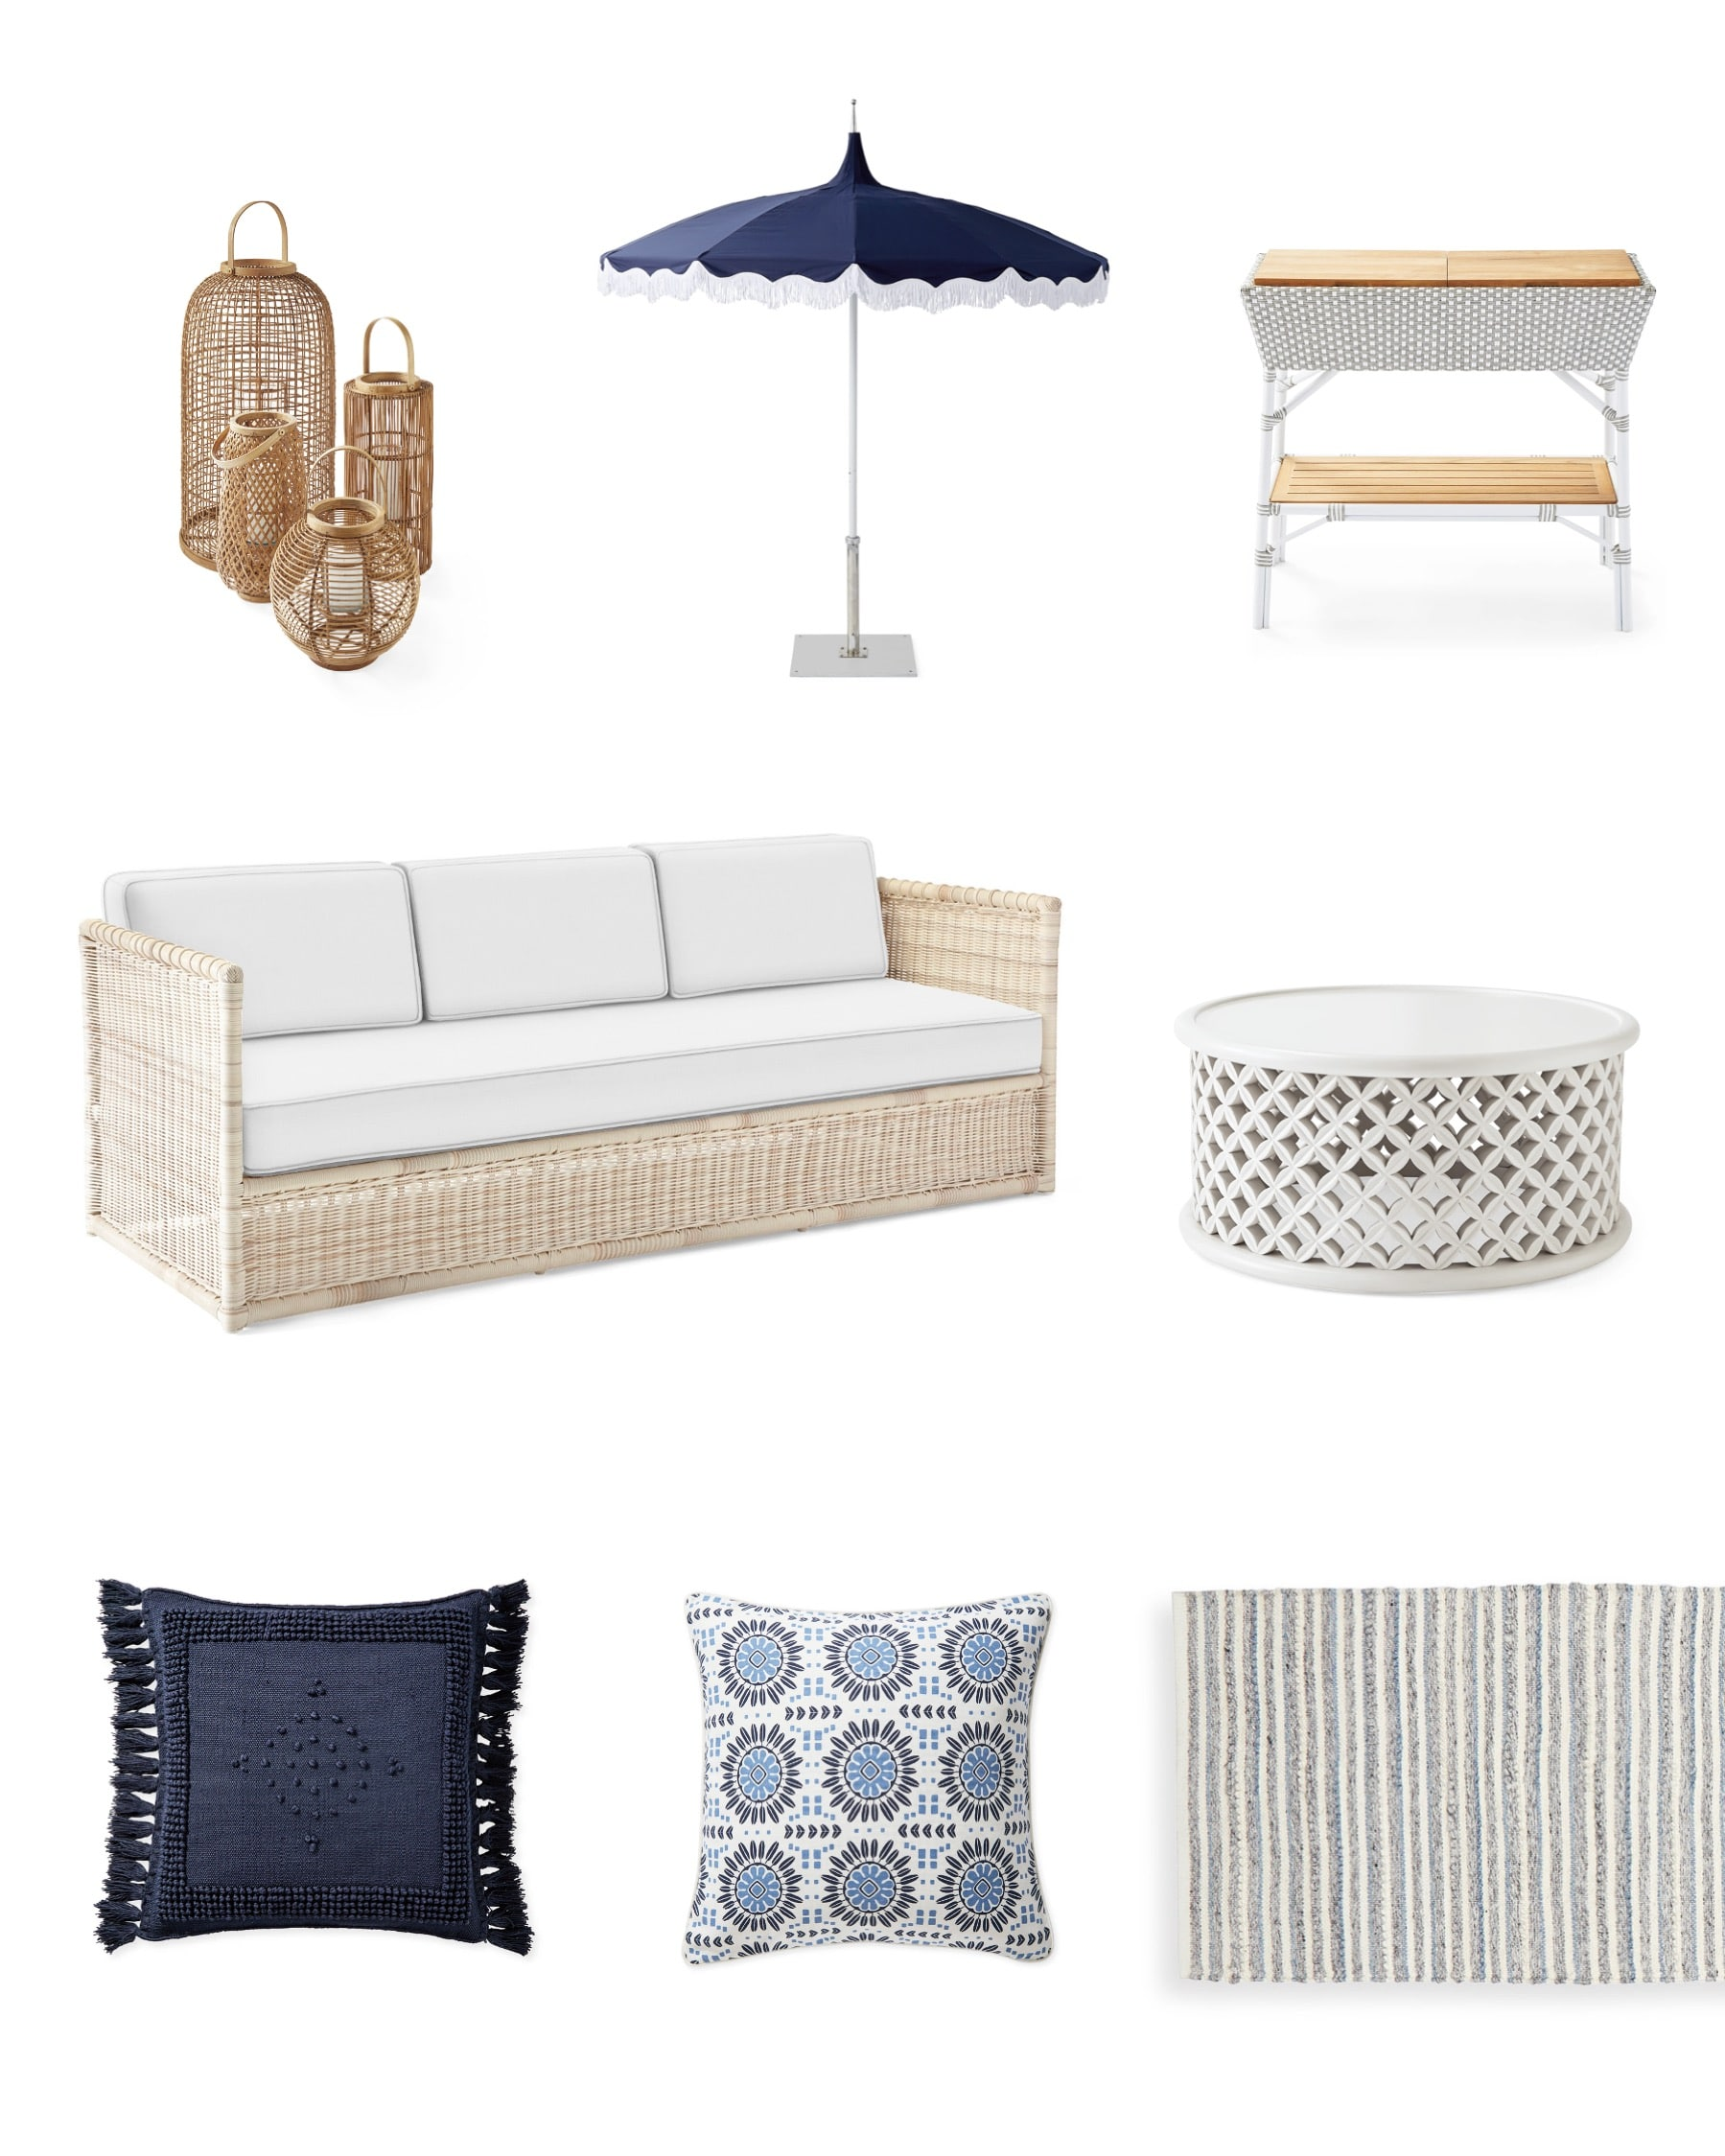 Serena & Lily Summer Sale Outdoor Oasis Jill Shelvin Design